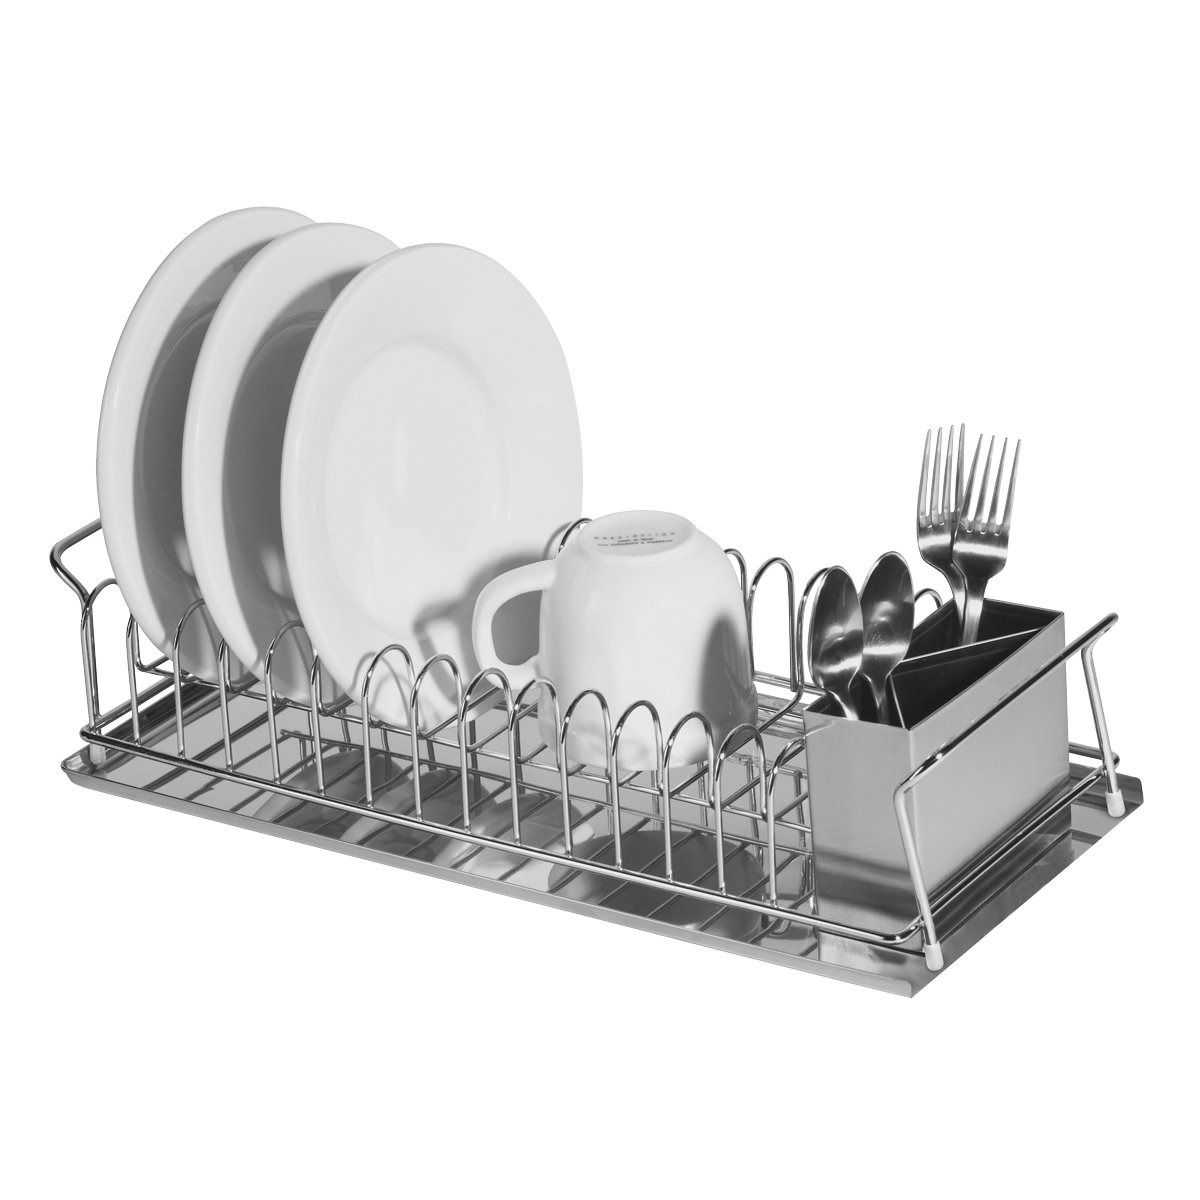 Kitchen Dish Rack Amazoncom Oggi 7126 3 Piece Dish Rack Set Dish Drying Rack